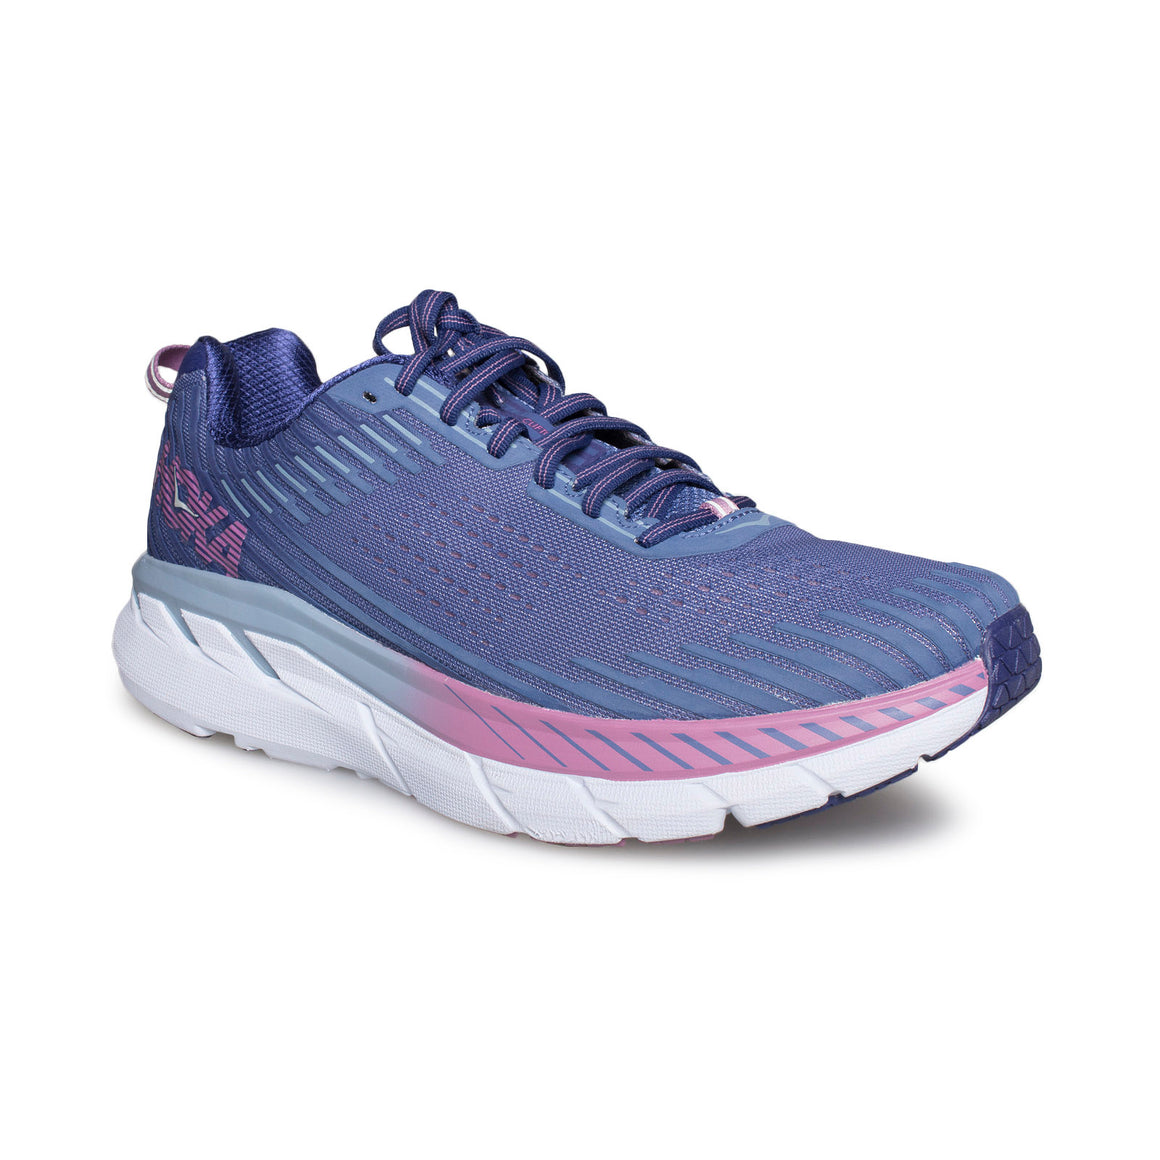 Hoka One One Clifton 5 Marlin / Blue Ribbon Running Shoes - Women's